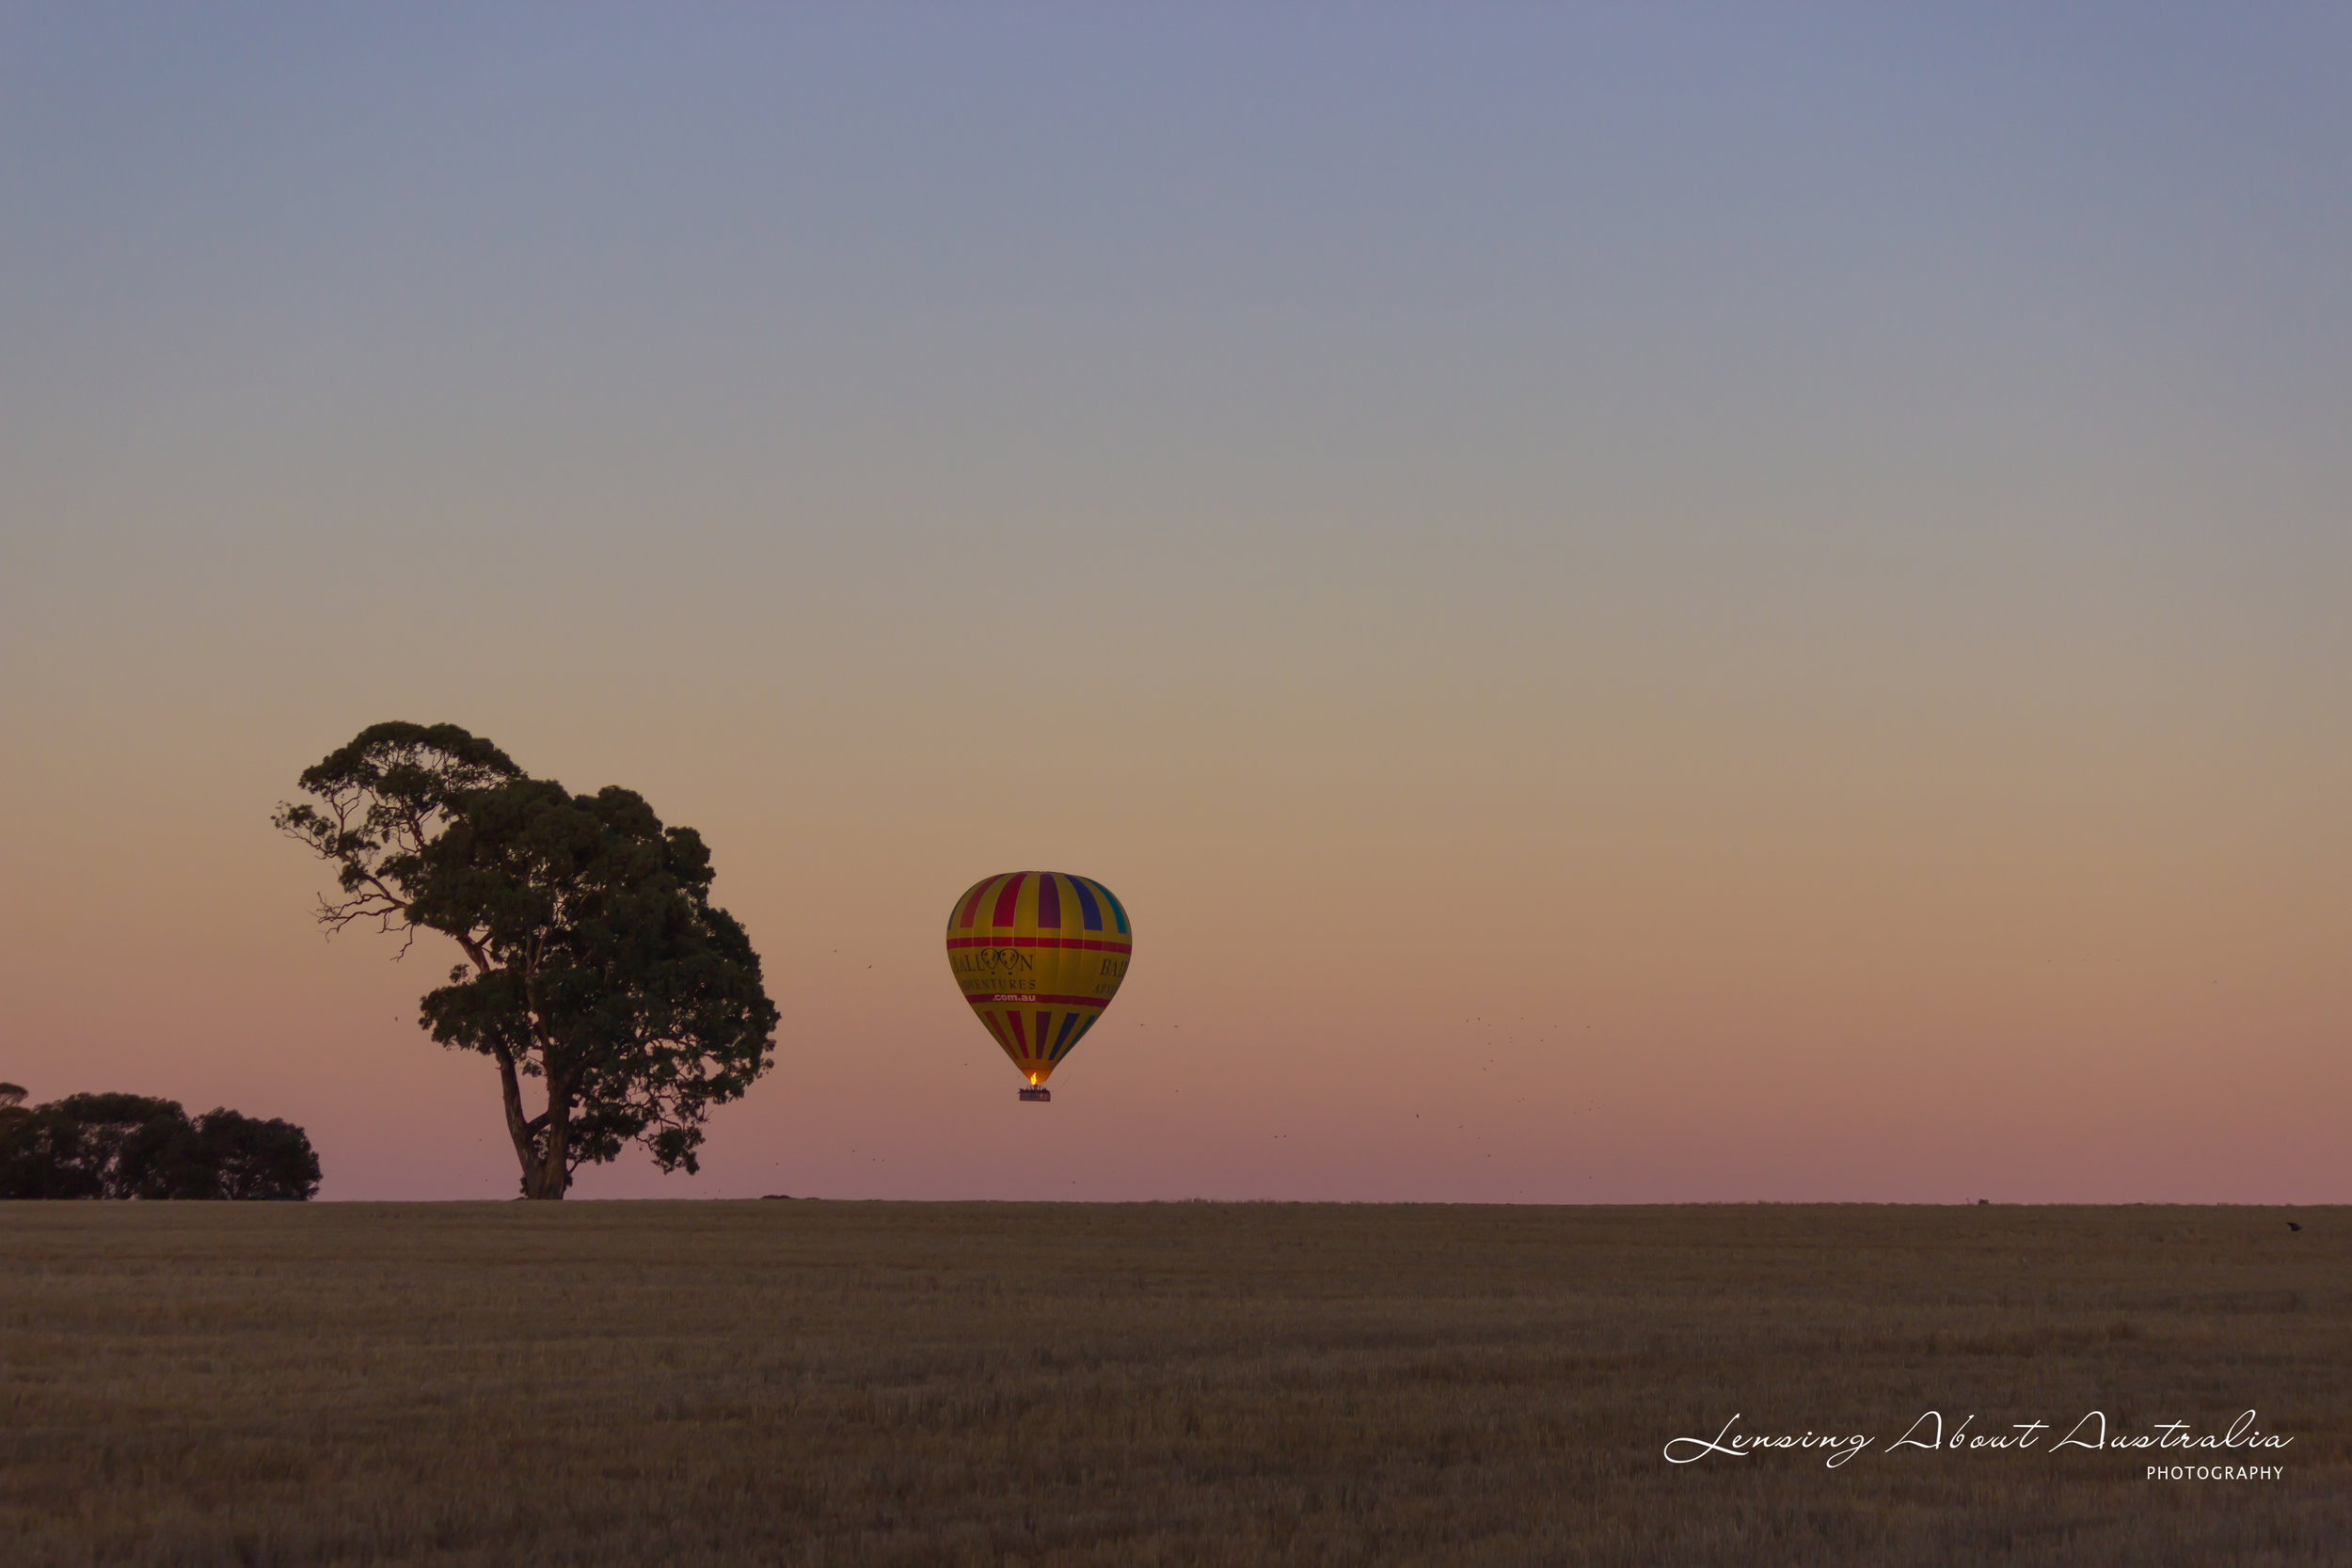 Hot Air Balloon over paddock, Barossa Valley, South Australia. https://www.lensingaboutaustralia.com